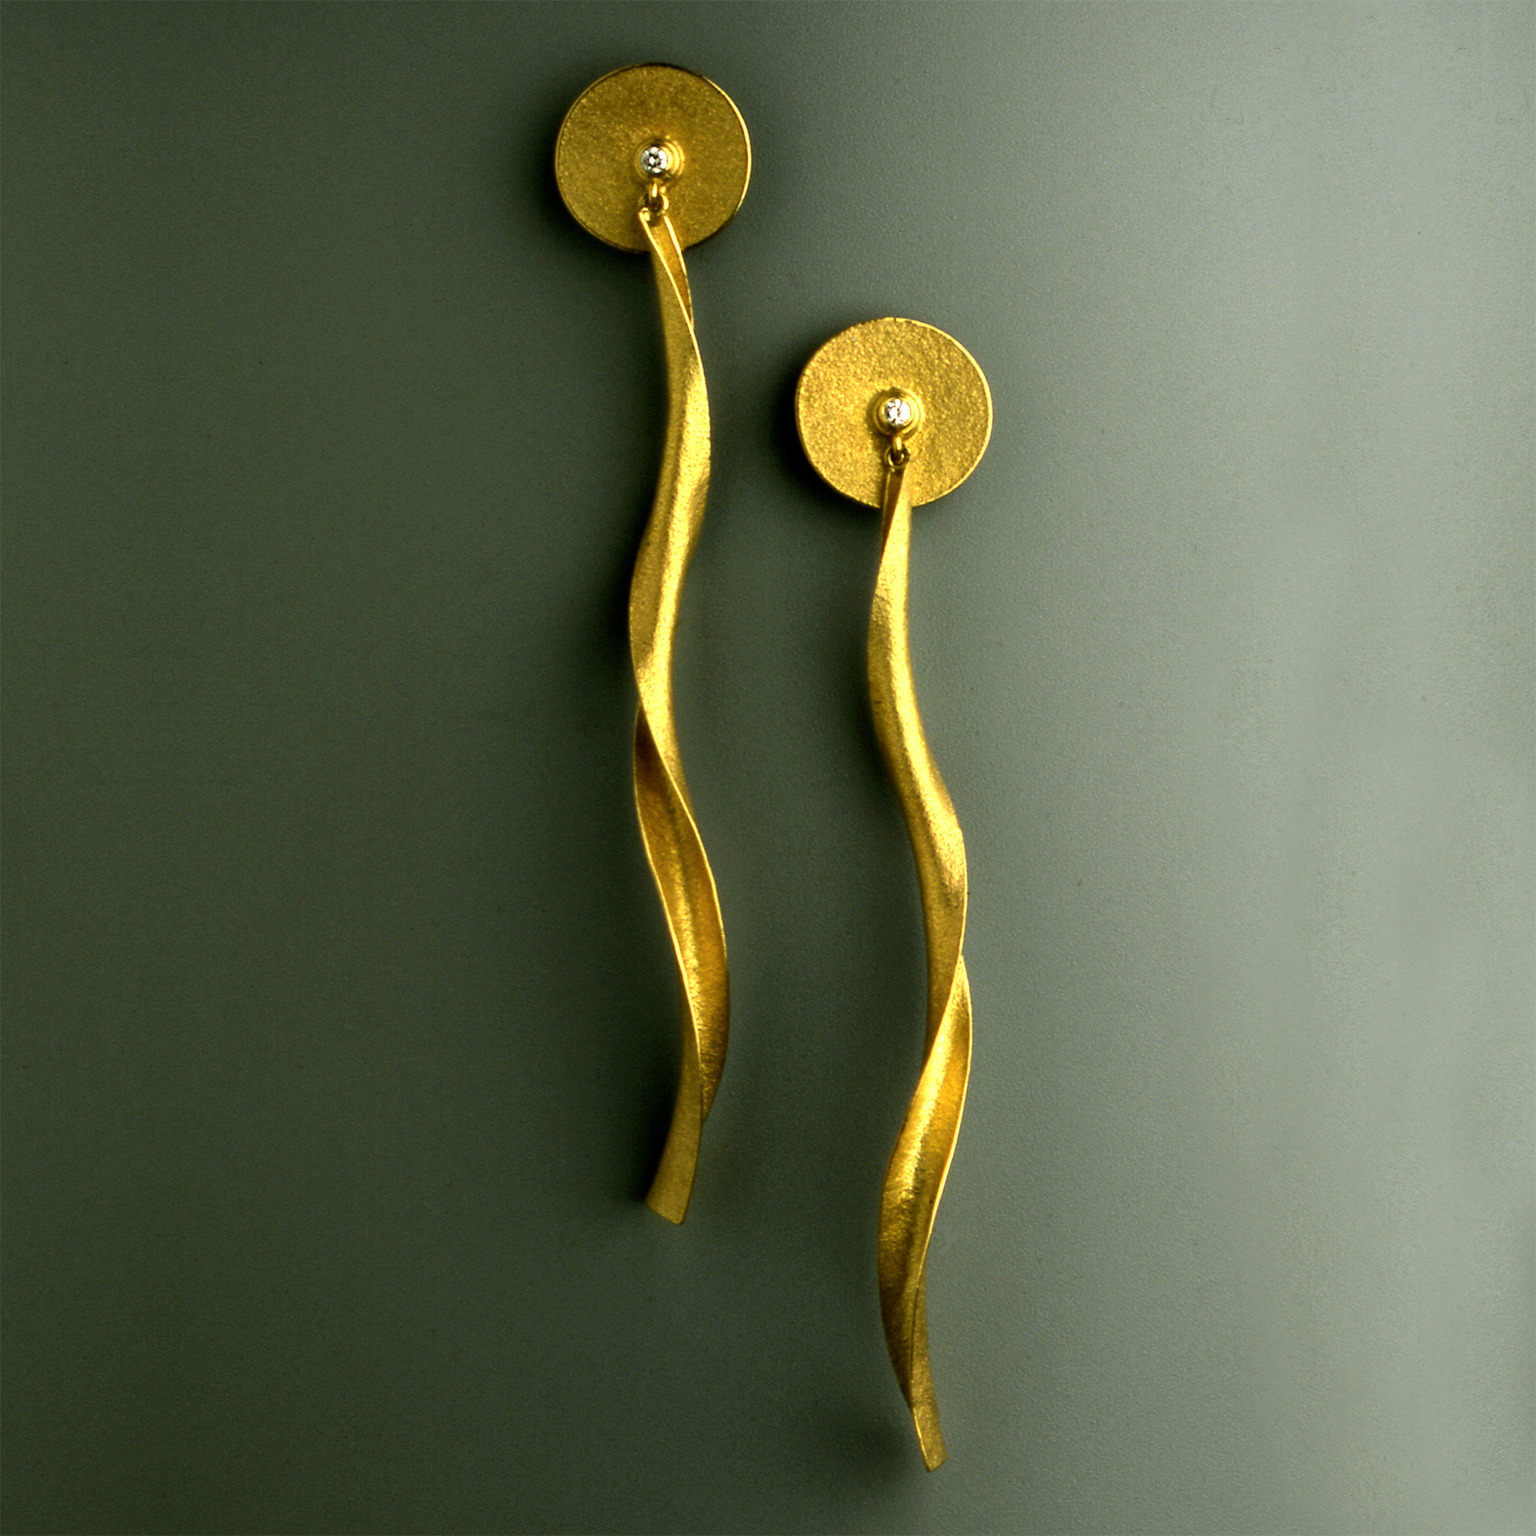 Jacqueline Mina earrings with twisting drops, 2002